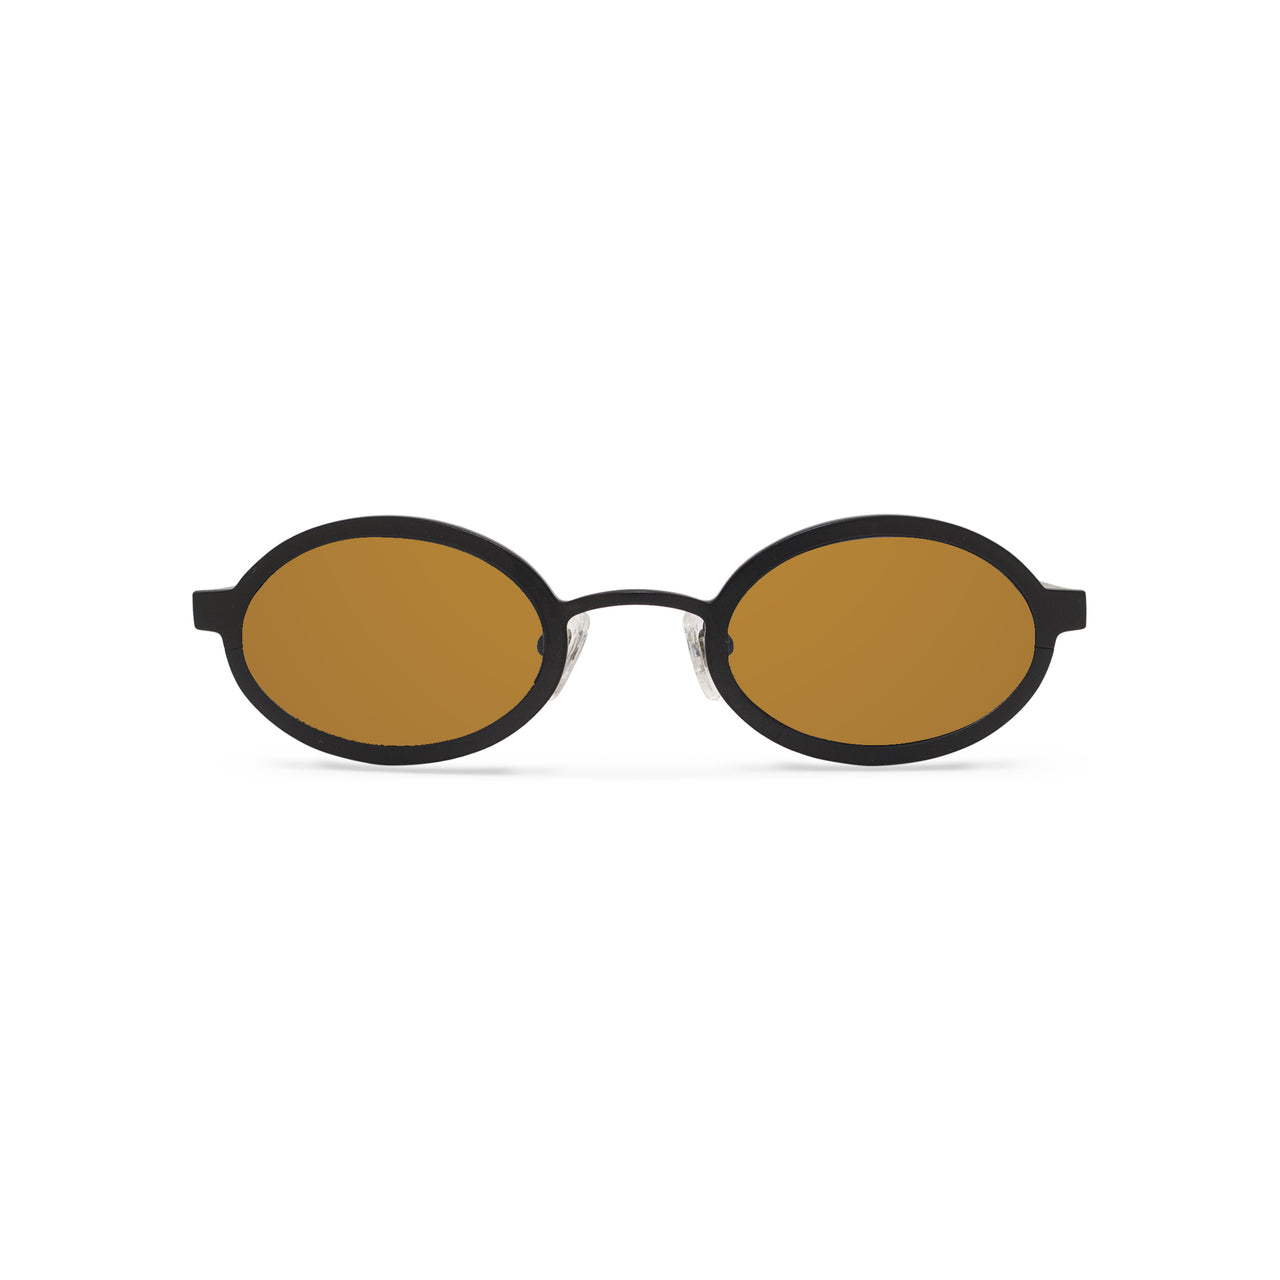 Metal. Matte Black. Bronze Mirror Lens. - BLYSZAK eyewear eyewear - eyewear, optical, sunglasses